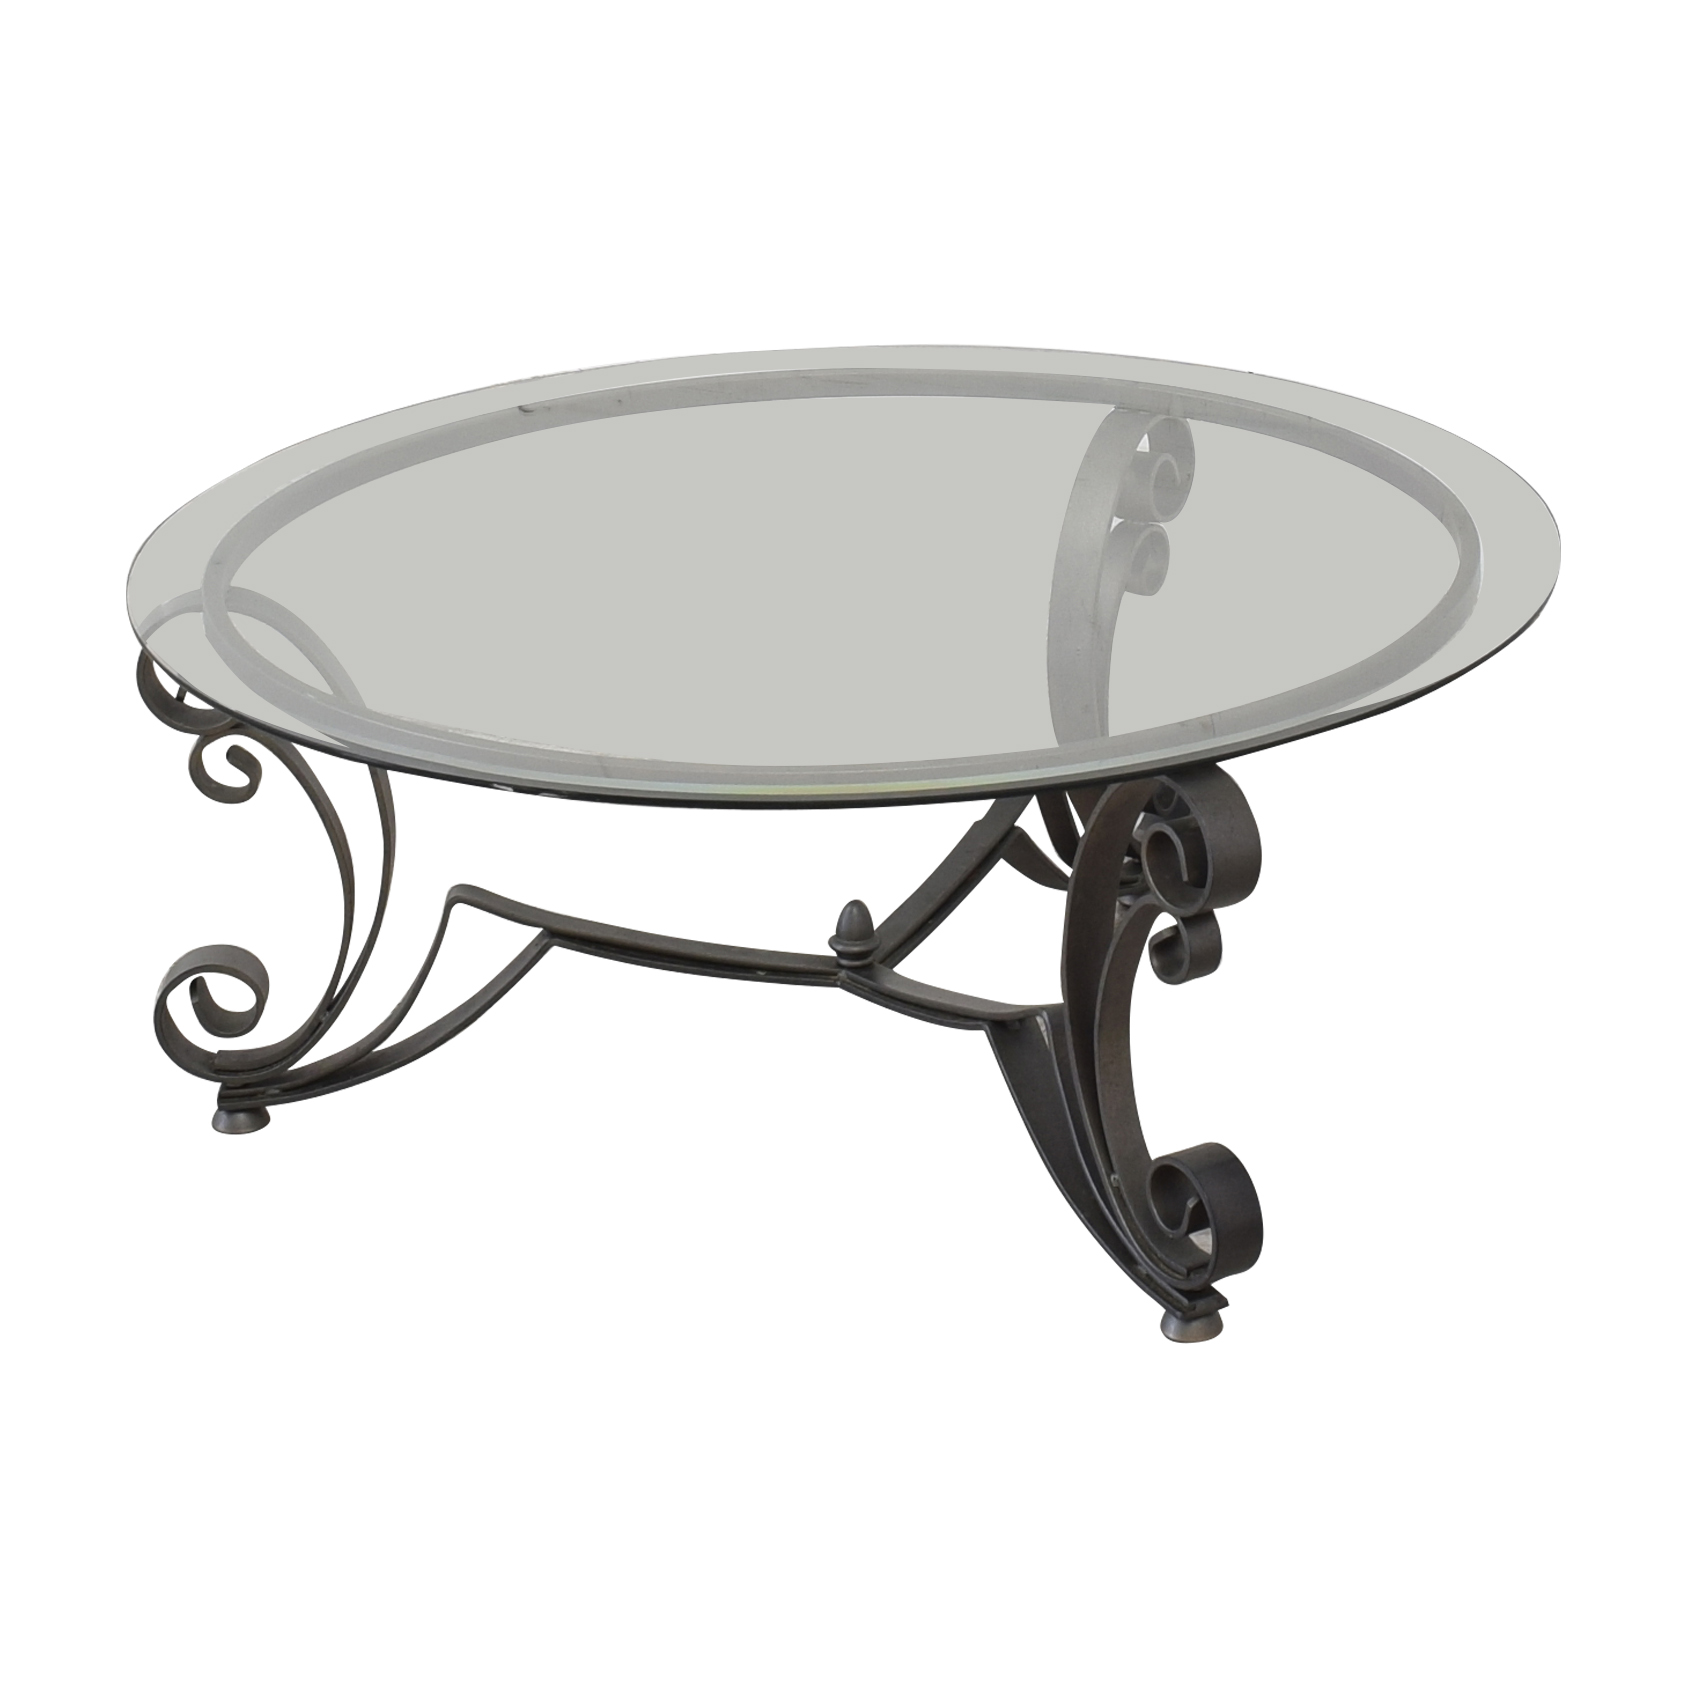 Bloomingdale's Art Deco Style Coffee Table second hand